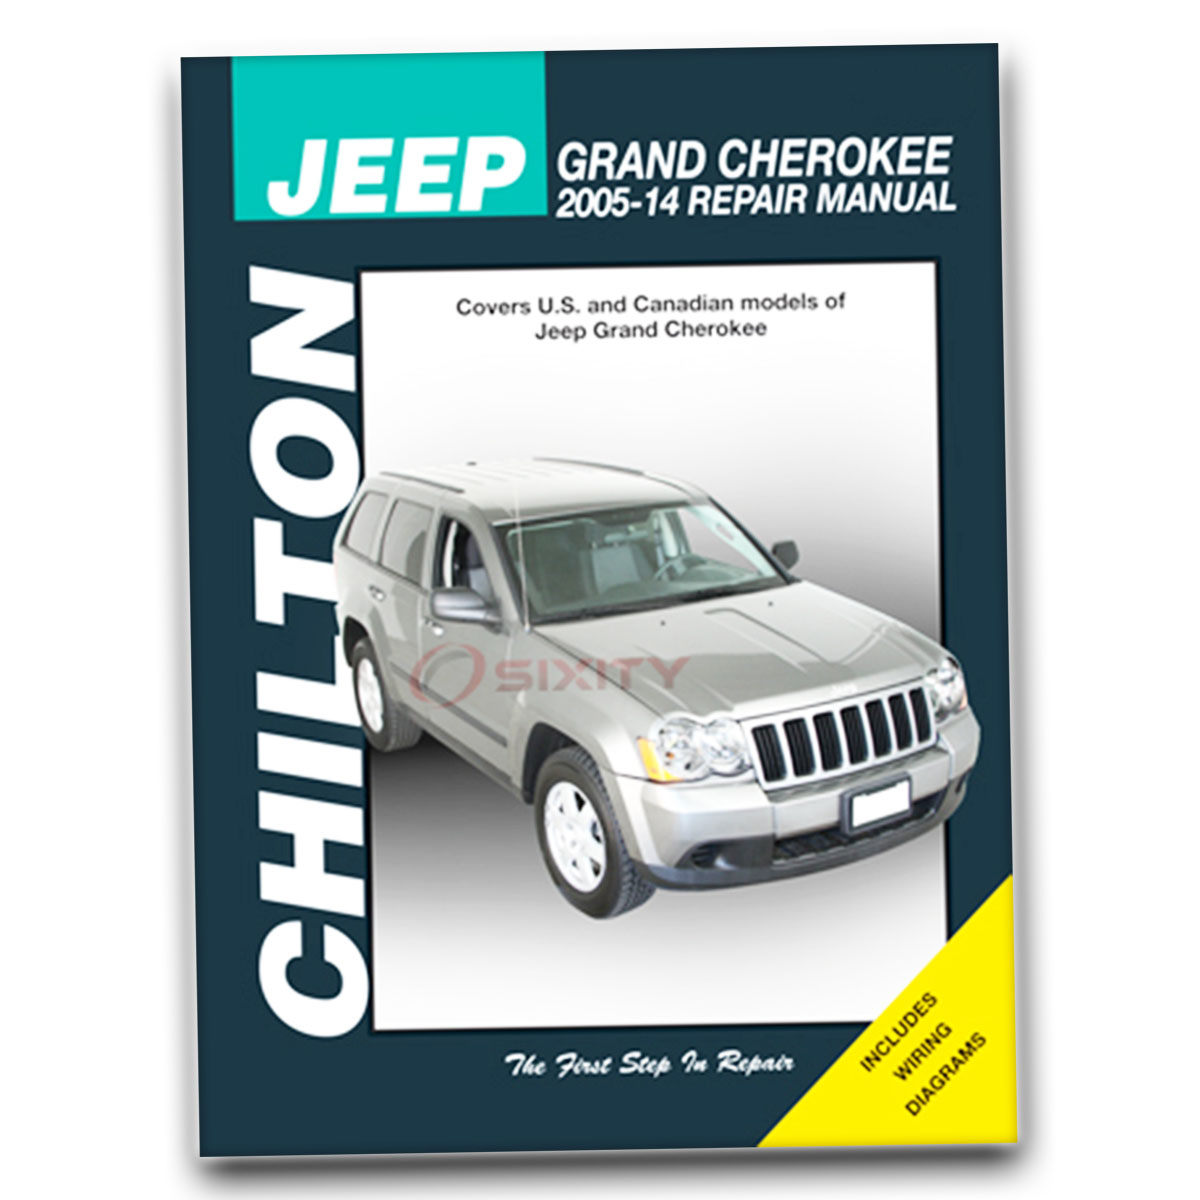 jeep grand cherokee chilton repair manual 65th anniversary edition rh ebay com chilton jeep repair manual chilton jeep cj manual